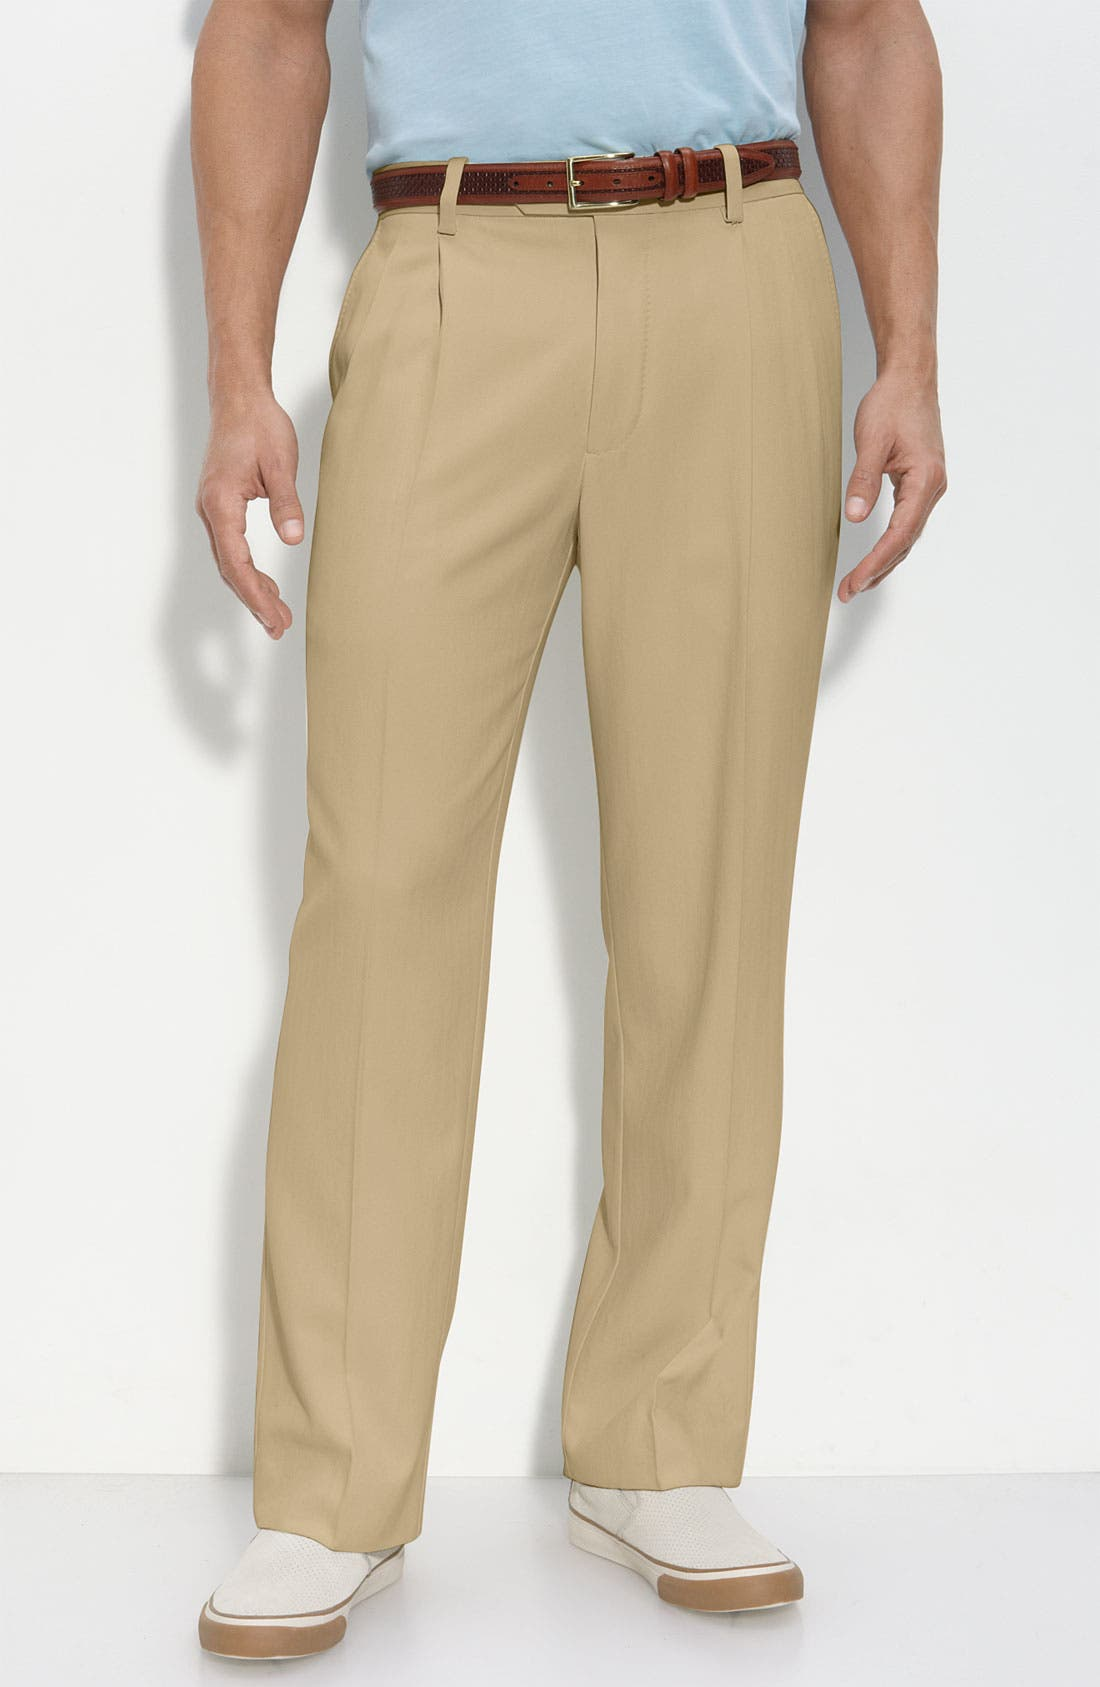 Alternate Image 1 Selected - Tommy Bahama 'Flying Fishbone' Pleated Pants